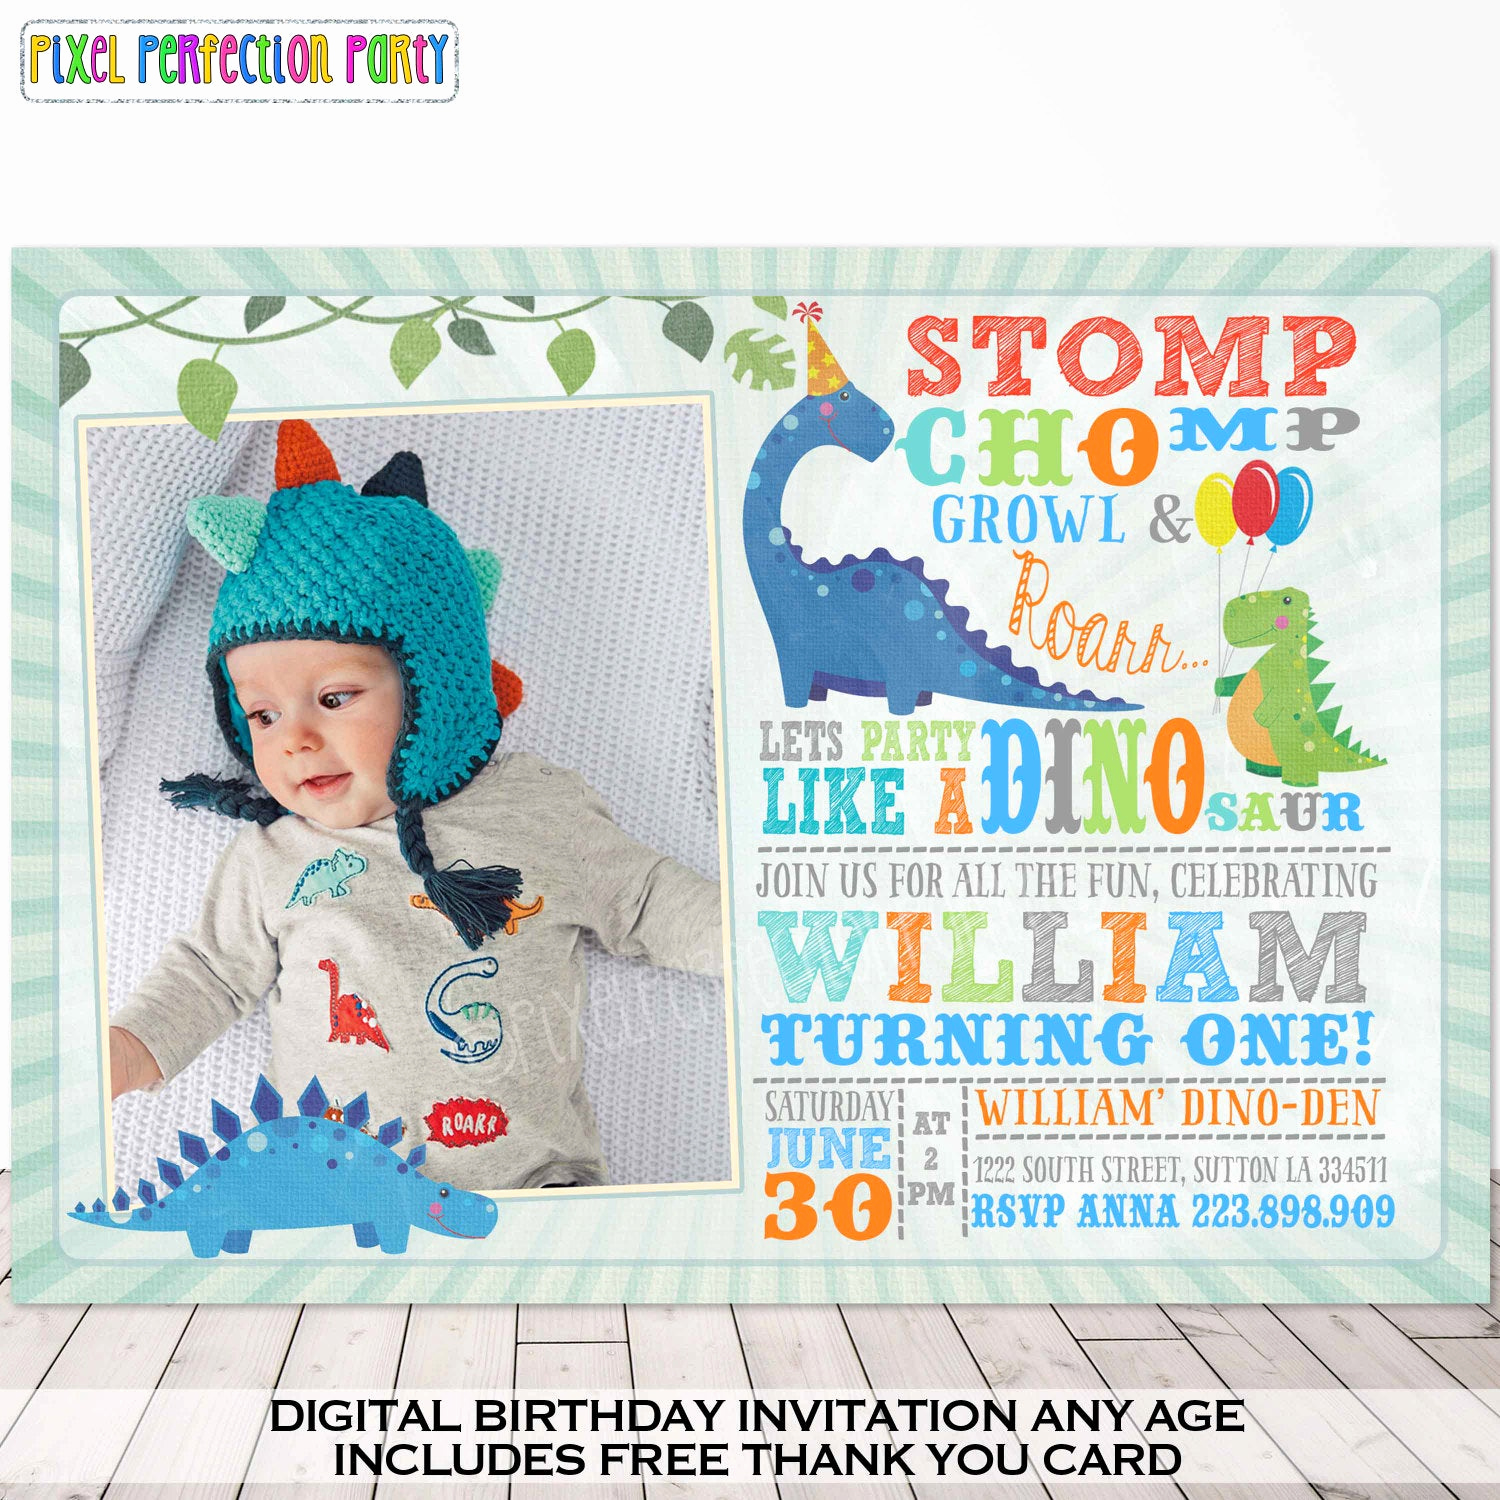 Dinosaur Birthday Invitation Wording Fresh Dinosaur Invitation Dinosaur Birthday Invitation Dinosaur Dig